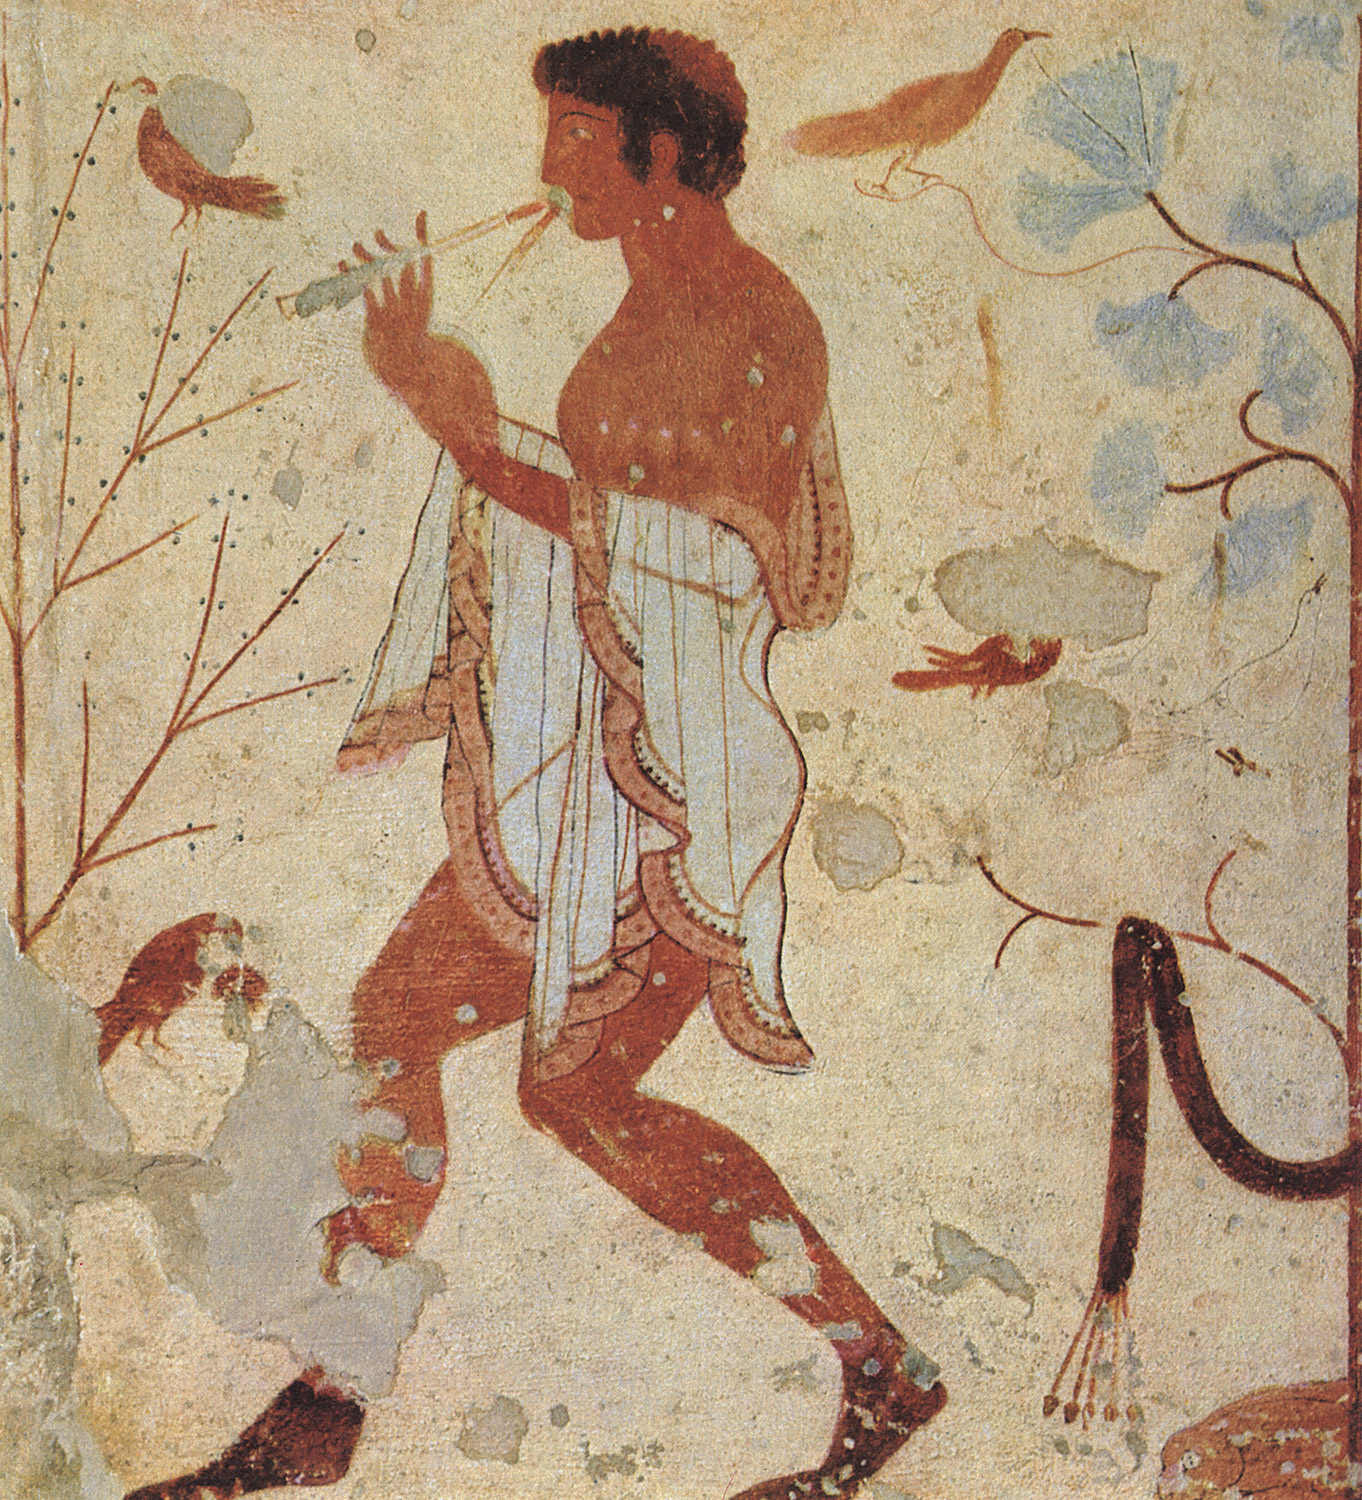 Flutist, dancing among the birds. 5th century BCE. Tarquinia, Tomb of the Triclinium